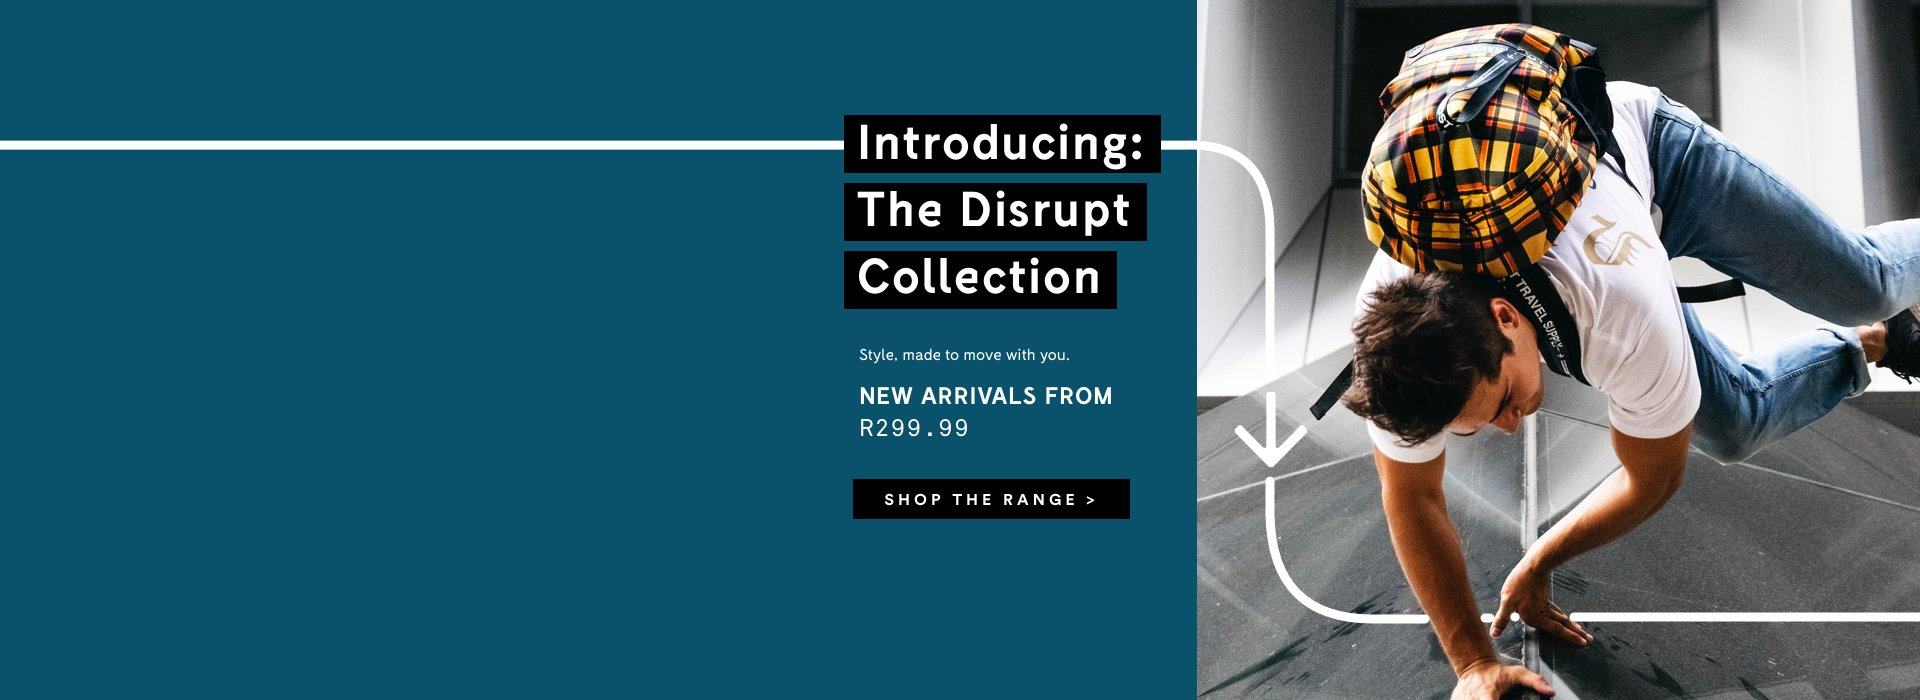 The Disrupt Collection